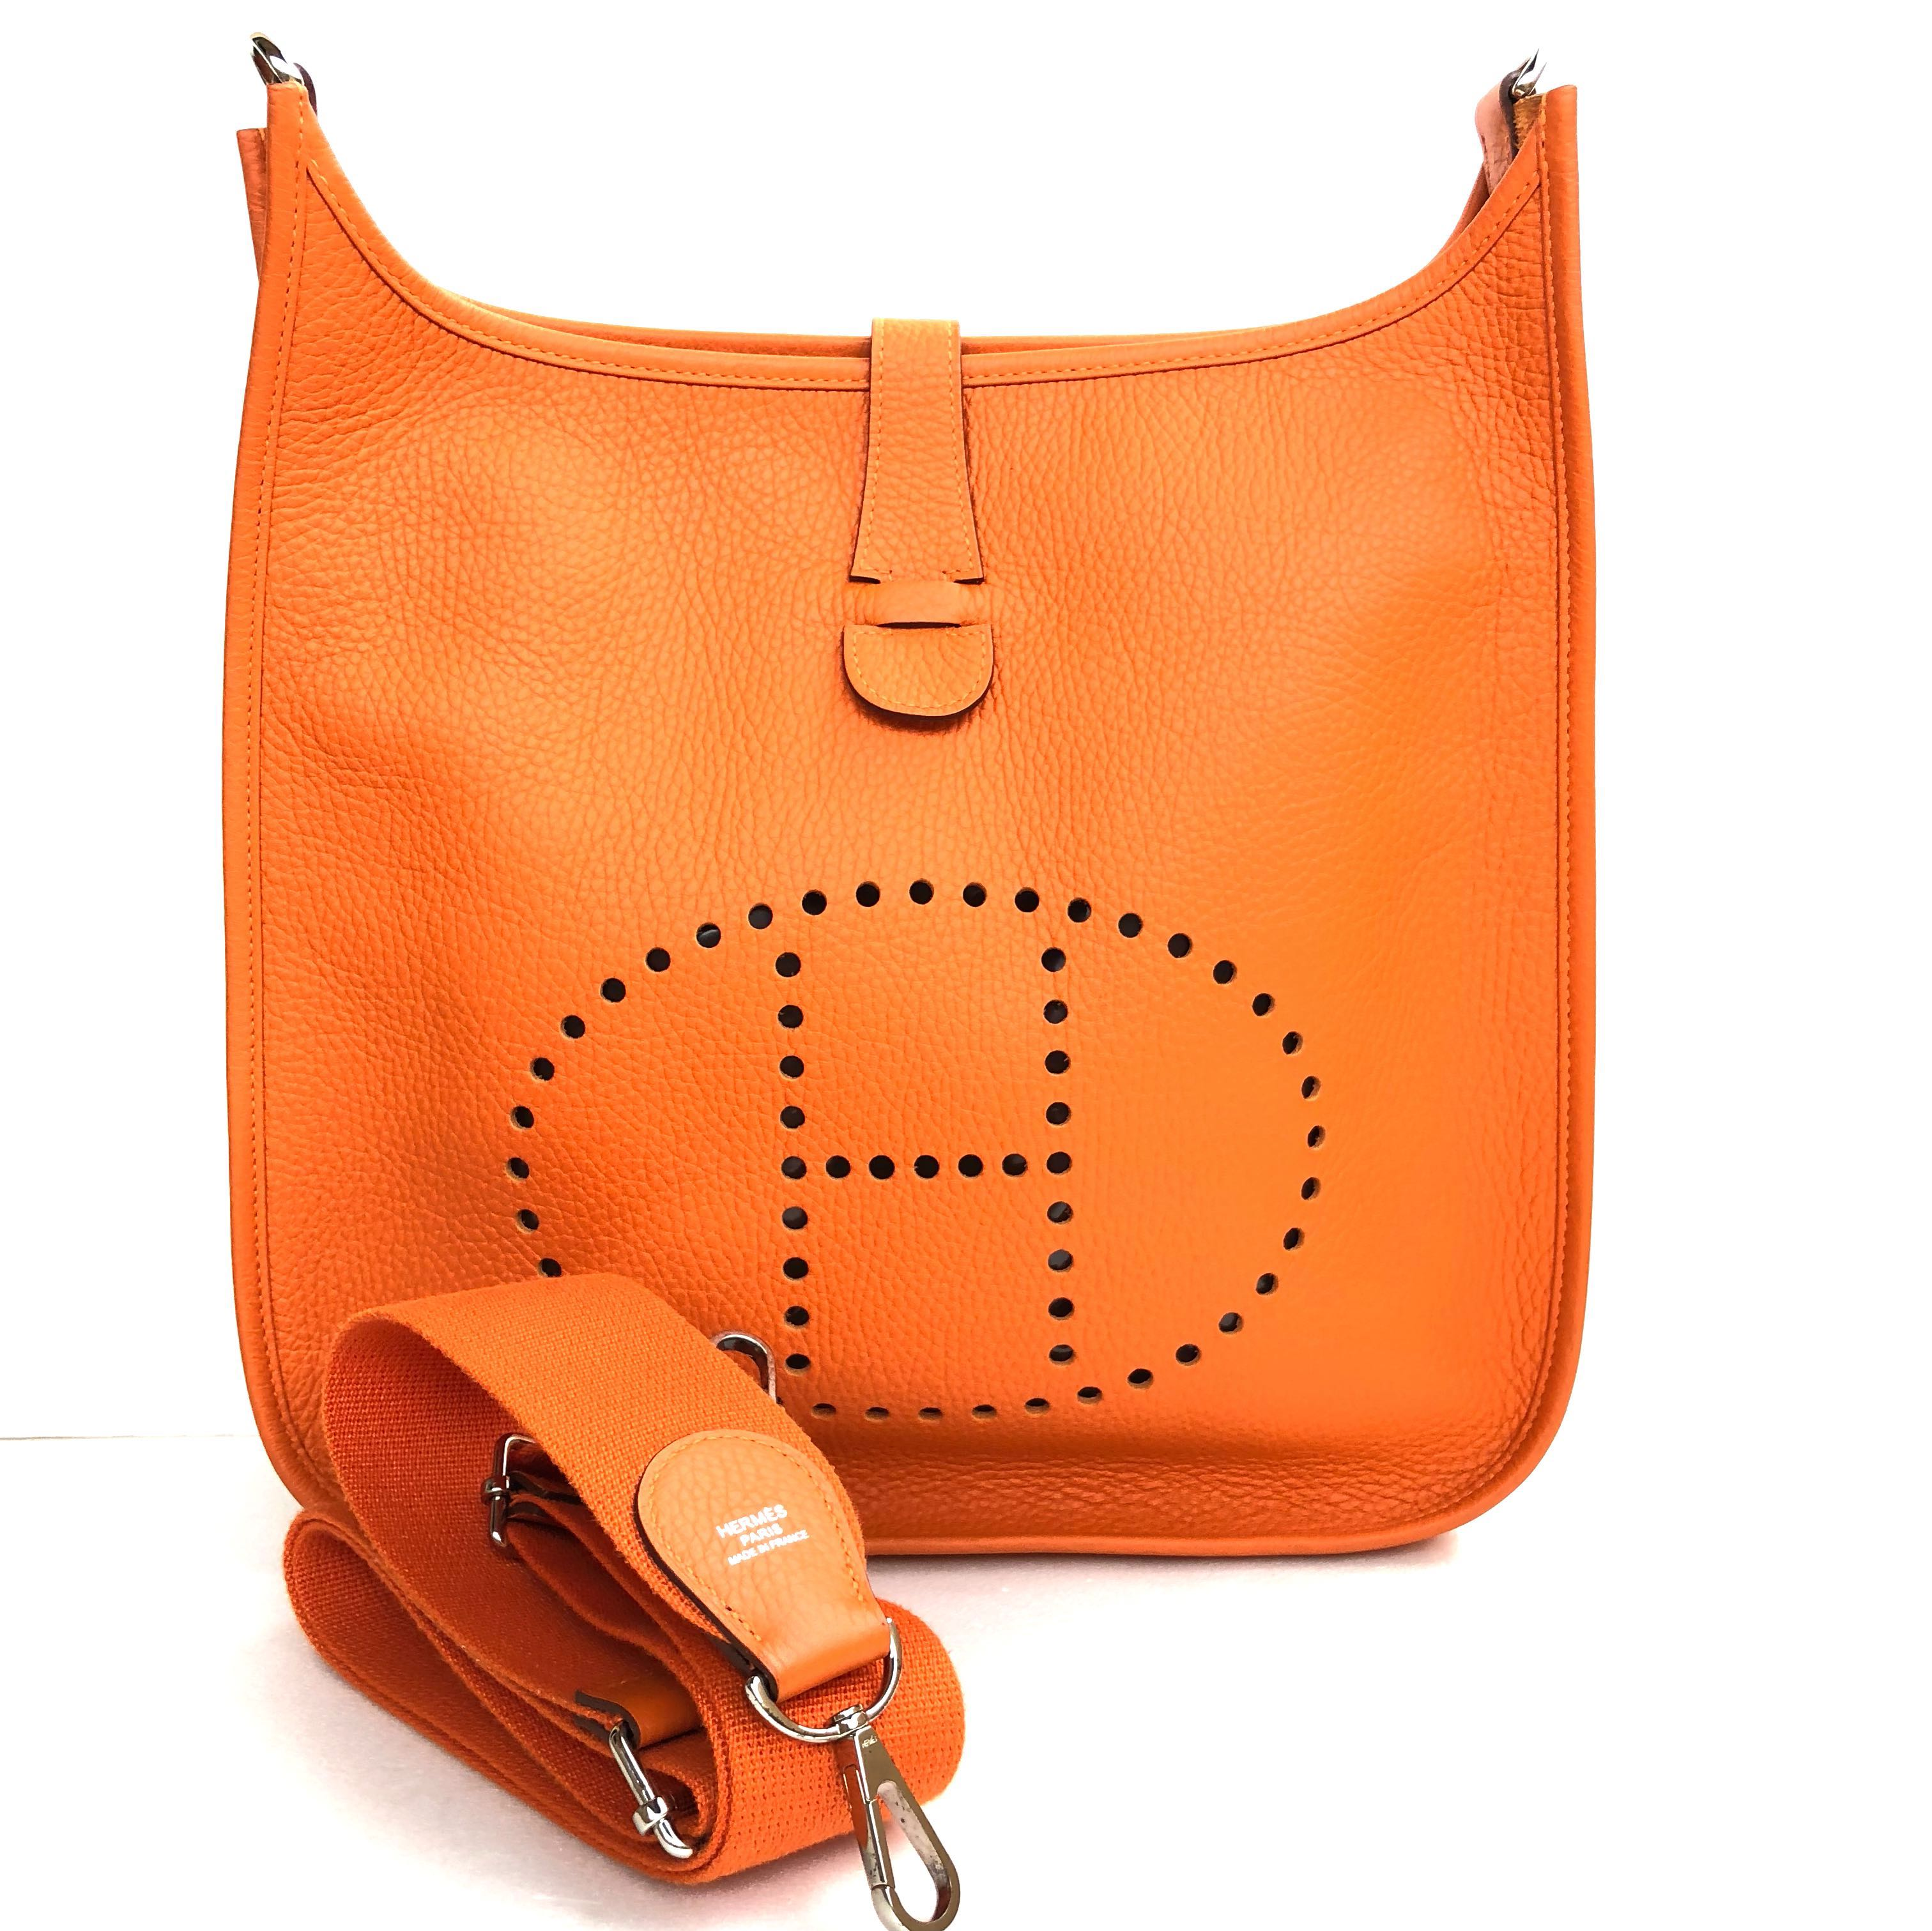 416a25371 Hermes - Orange Evelyne III GM 33 in Taurillon Clémence with PHW ...